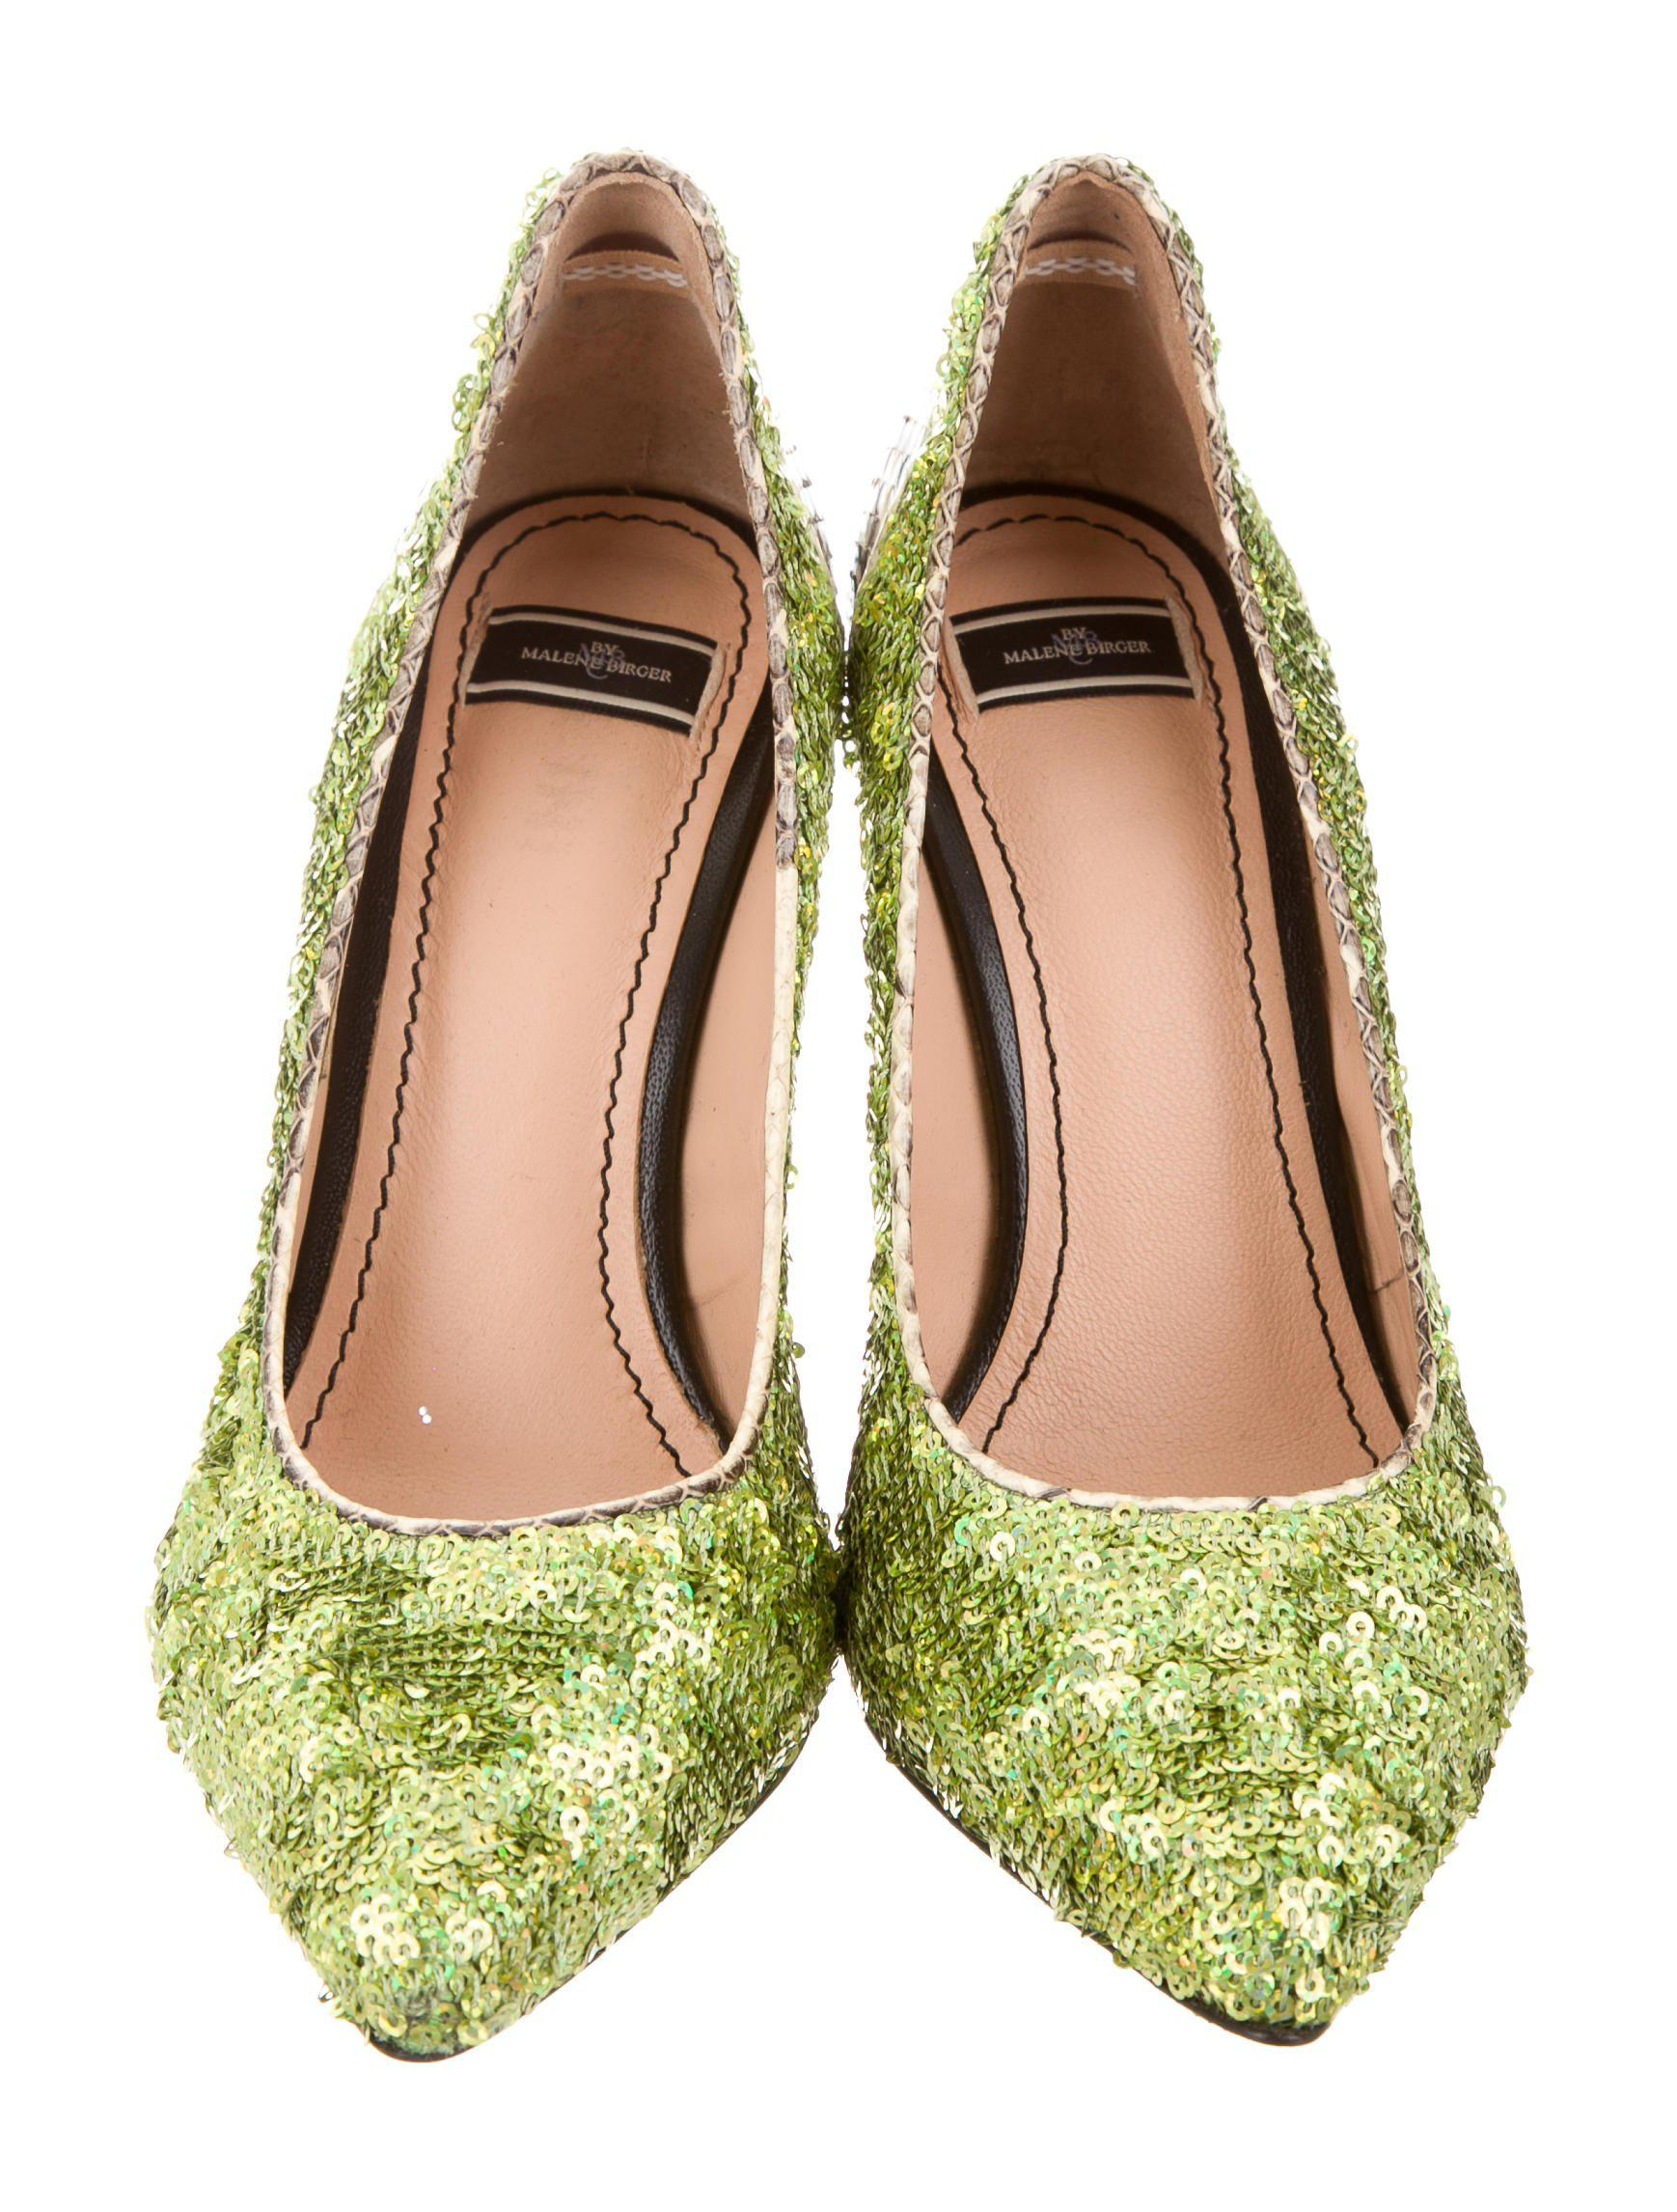 discount 2015 new By Malene Birger Sequined Snakeskin-Trimmed Pumps Inexpensive iZ0cd